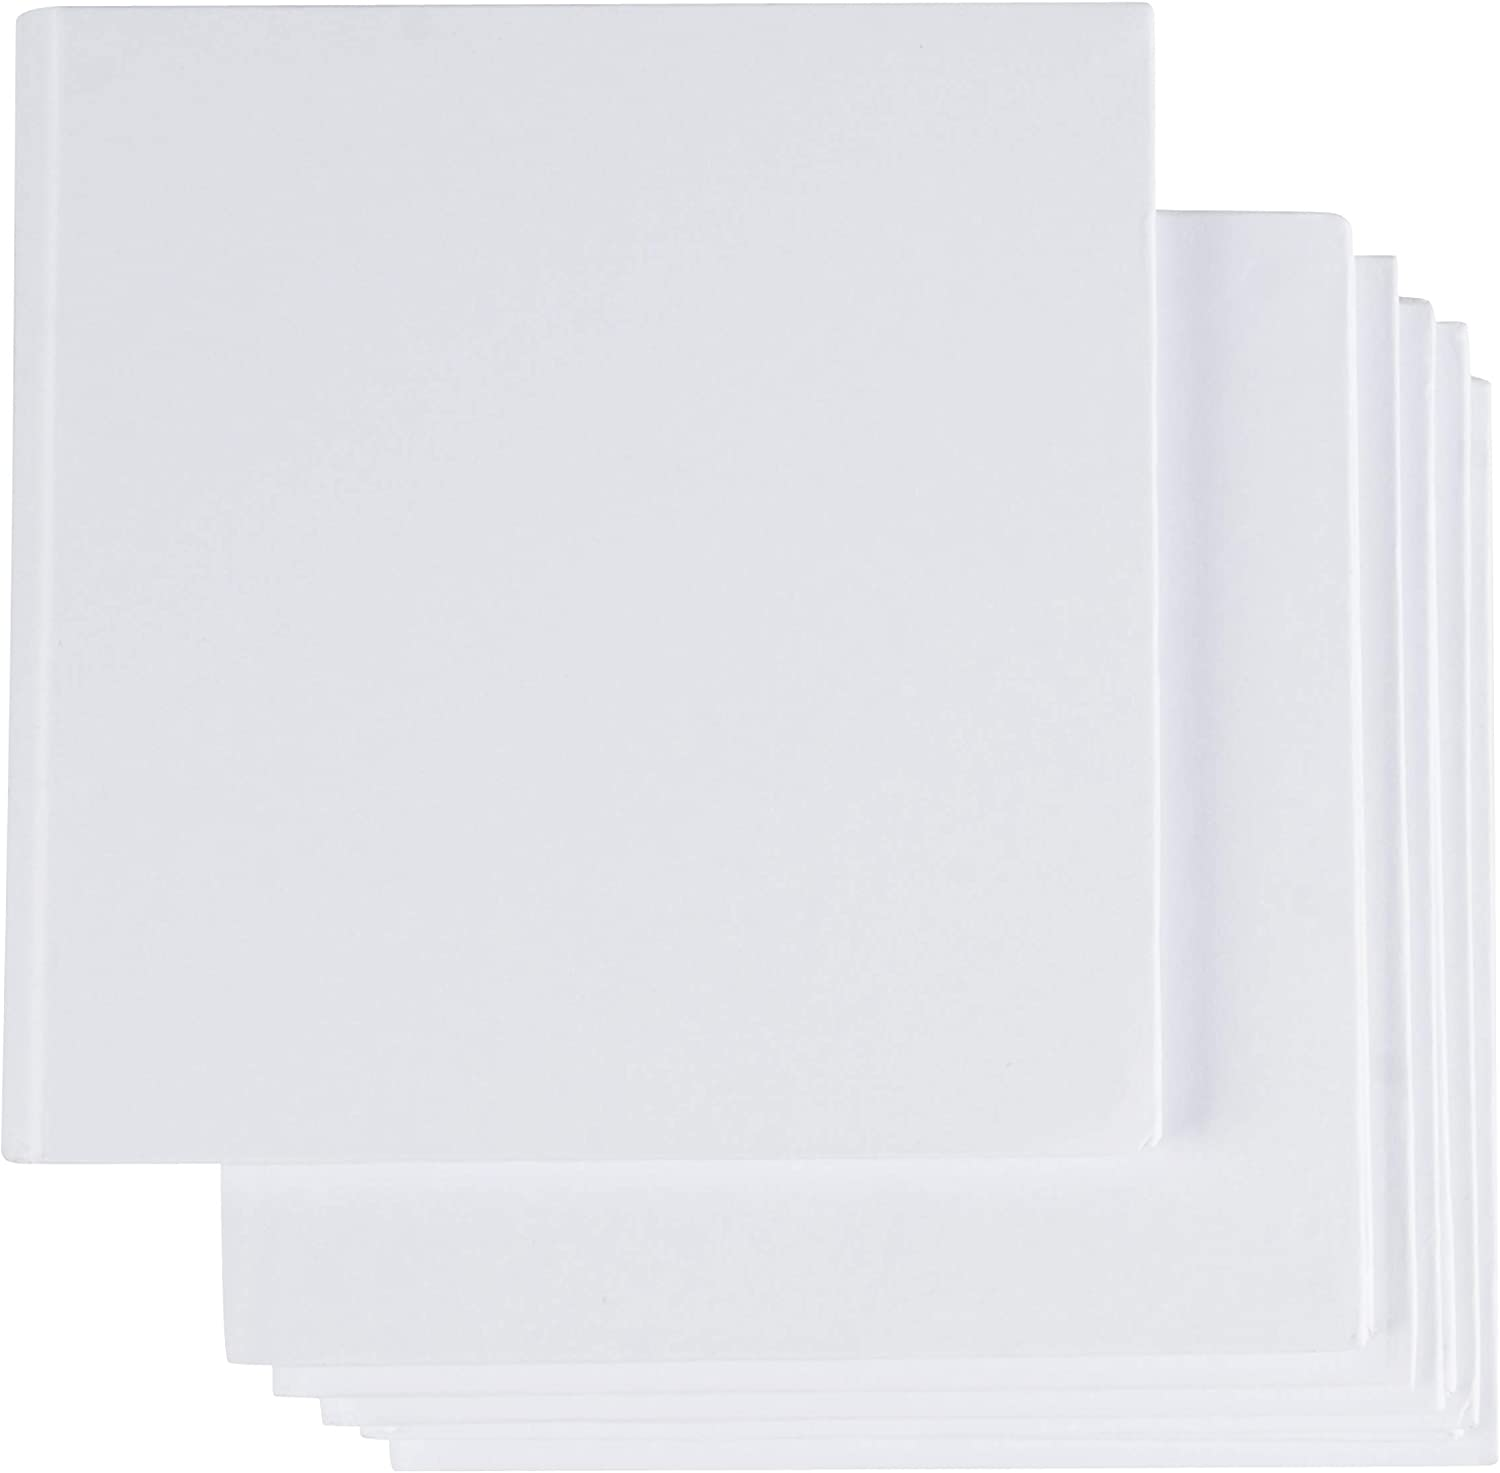 Hardcover Blank Book - 6-Pack Unlined Sketchbooks, Unruled Plain Travel Journals for Students Sketches, Children's Writing Books, Creative Class Projects, White, 5 x 5 Inches, 18 Sheets Each